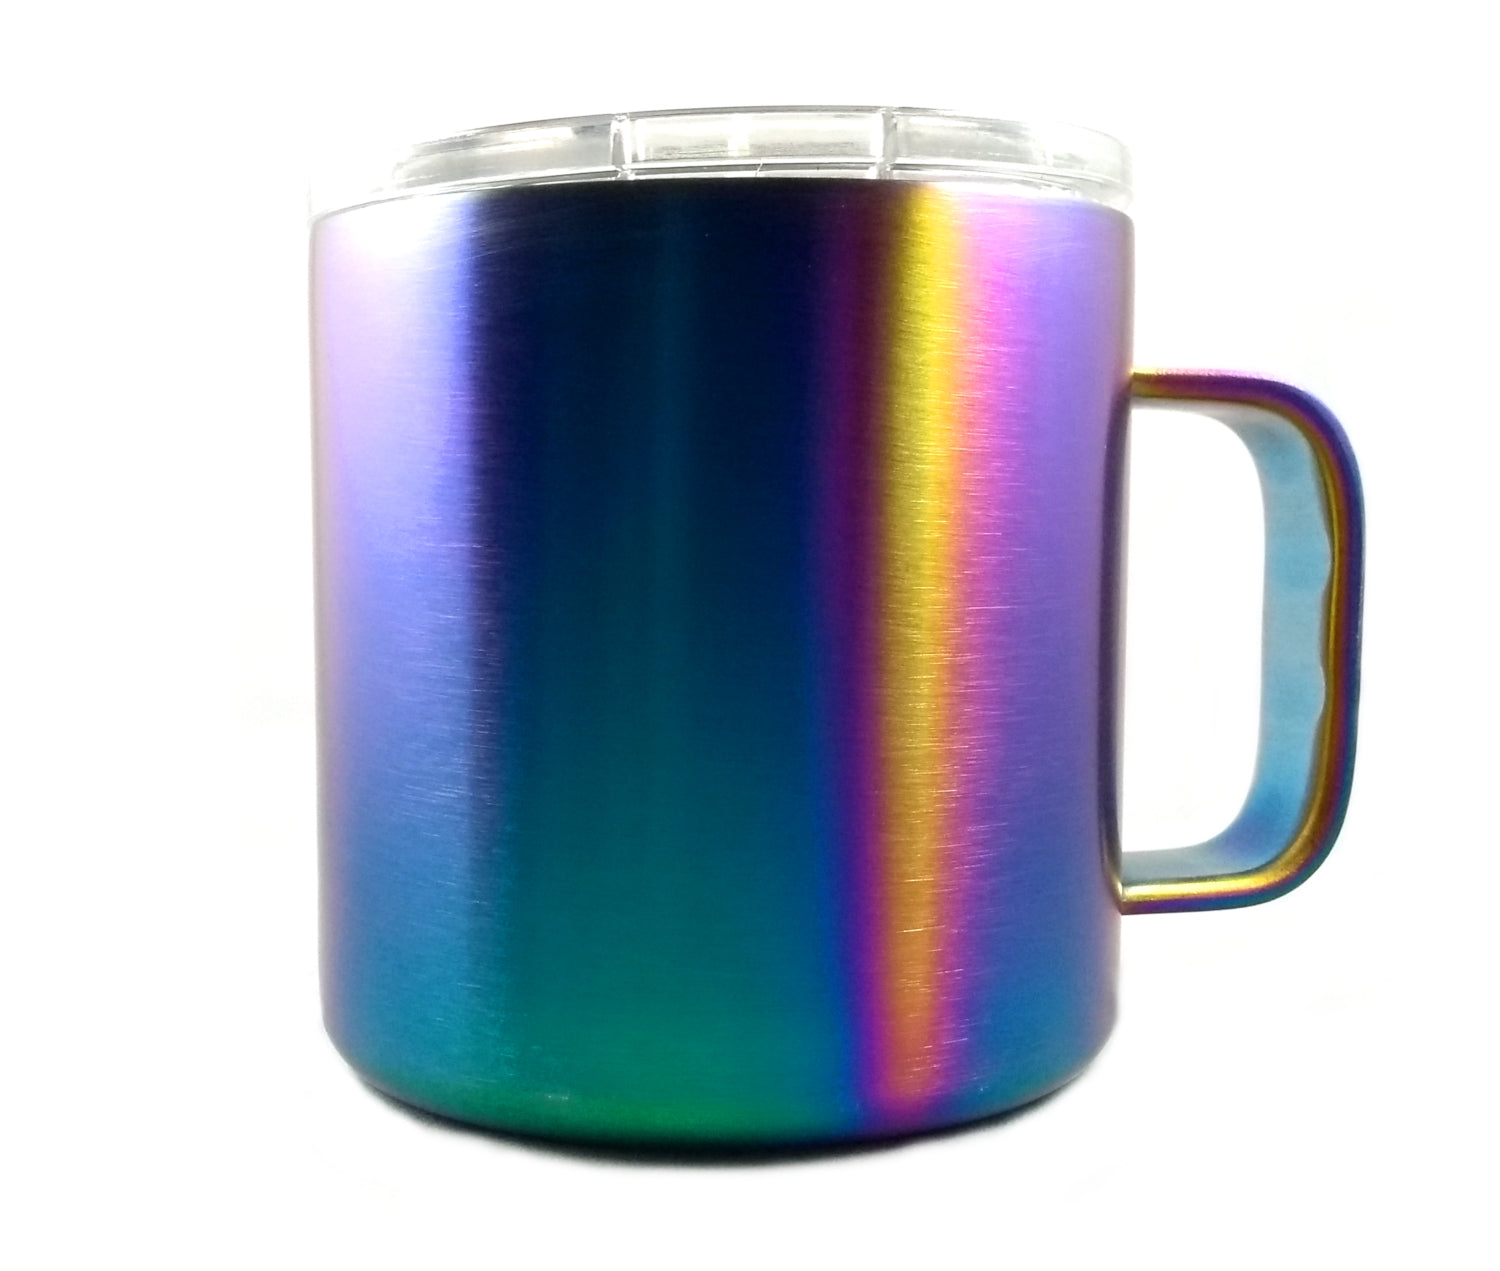 GREAT SPIRIT WARES Iridescent Rainbow Vacuum Insulated Travel Mug 16 Ounce Colorful Stainless Steel Shatterproof BPA Free, Lid Included